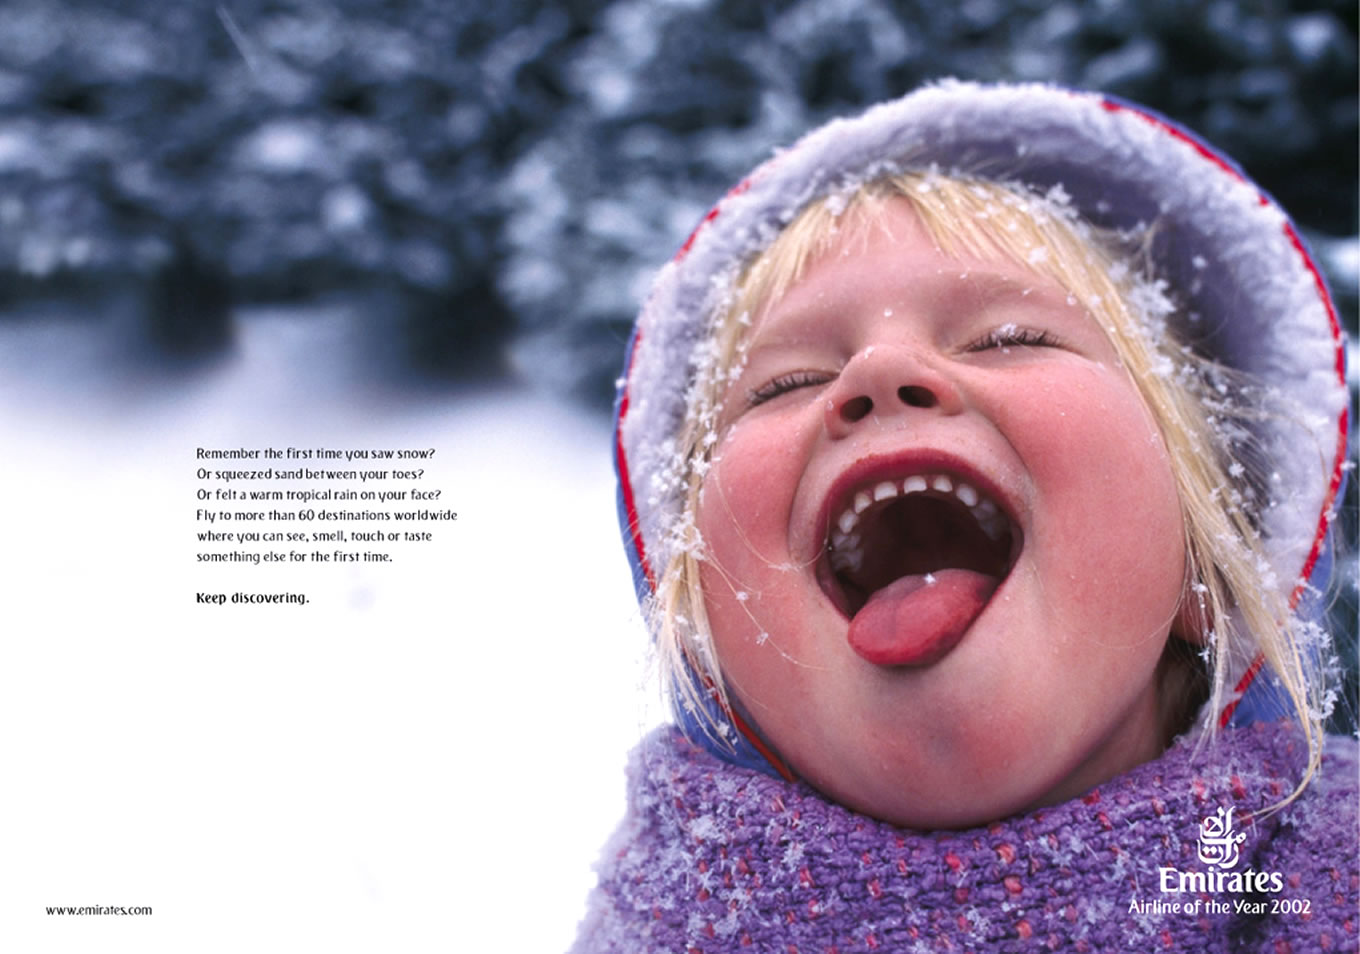 Snow Girl Print Advertising, Keep Discovering Marketing Campaign by Emirates